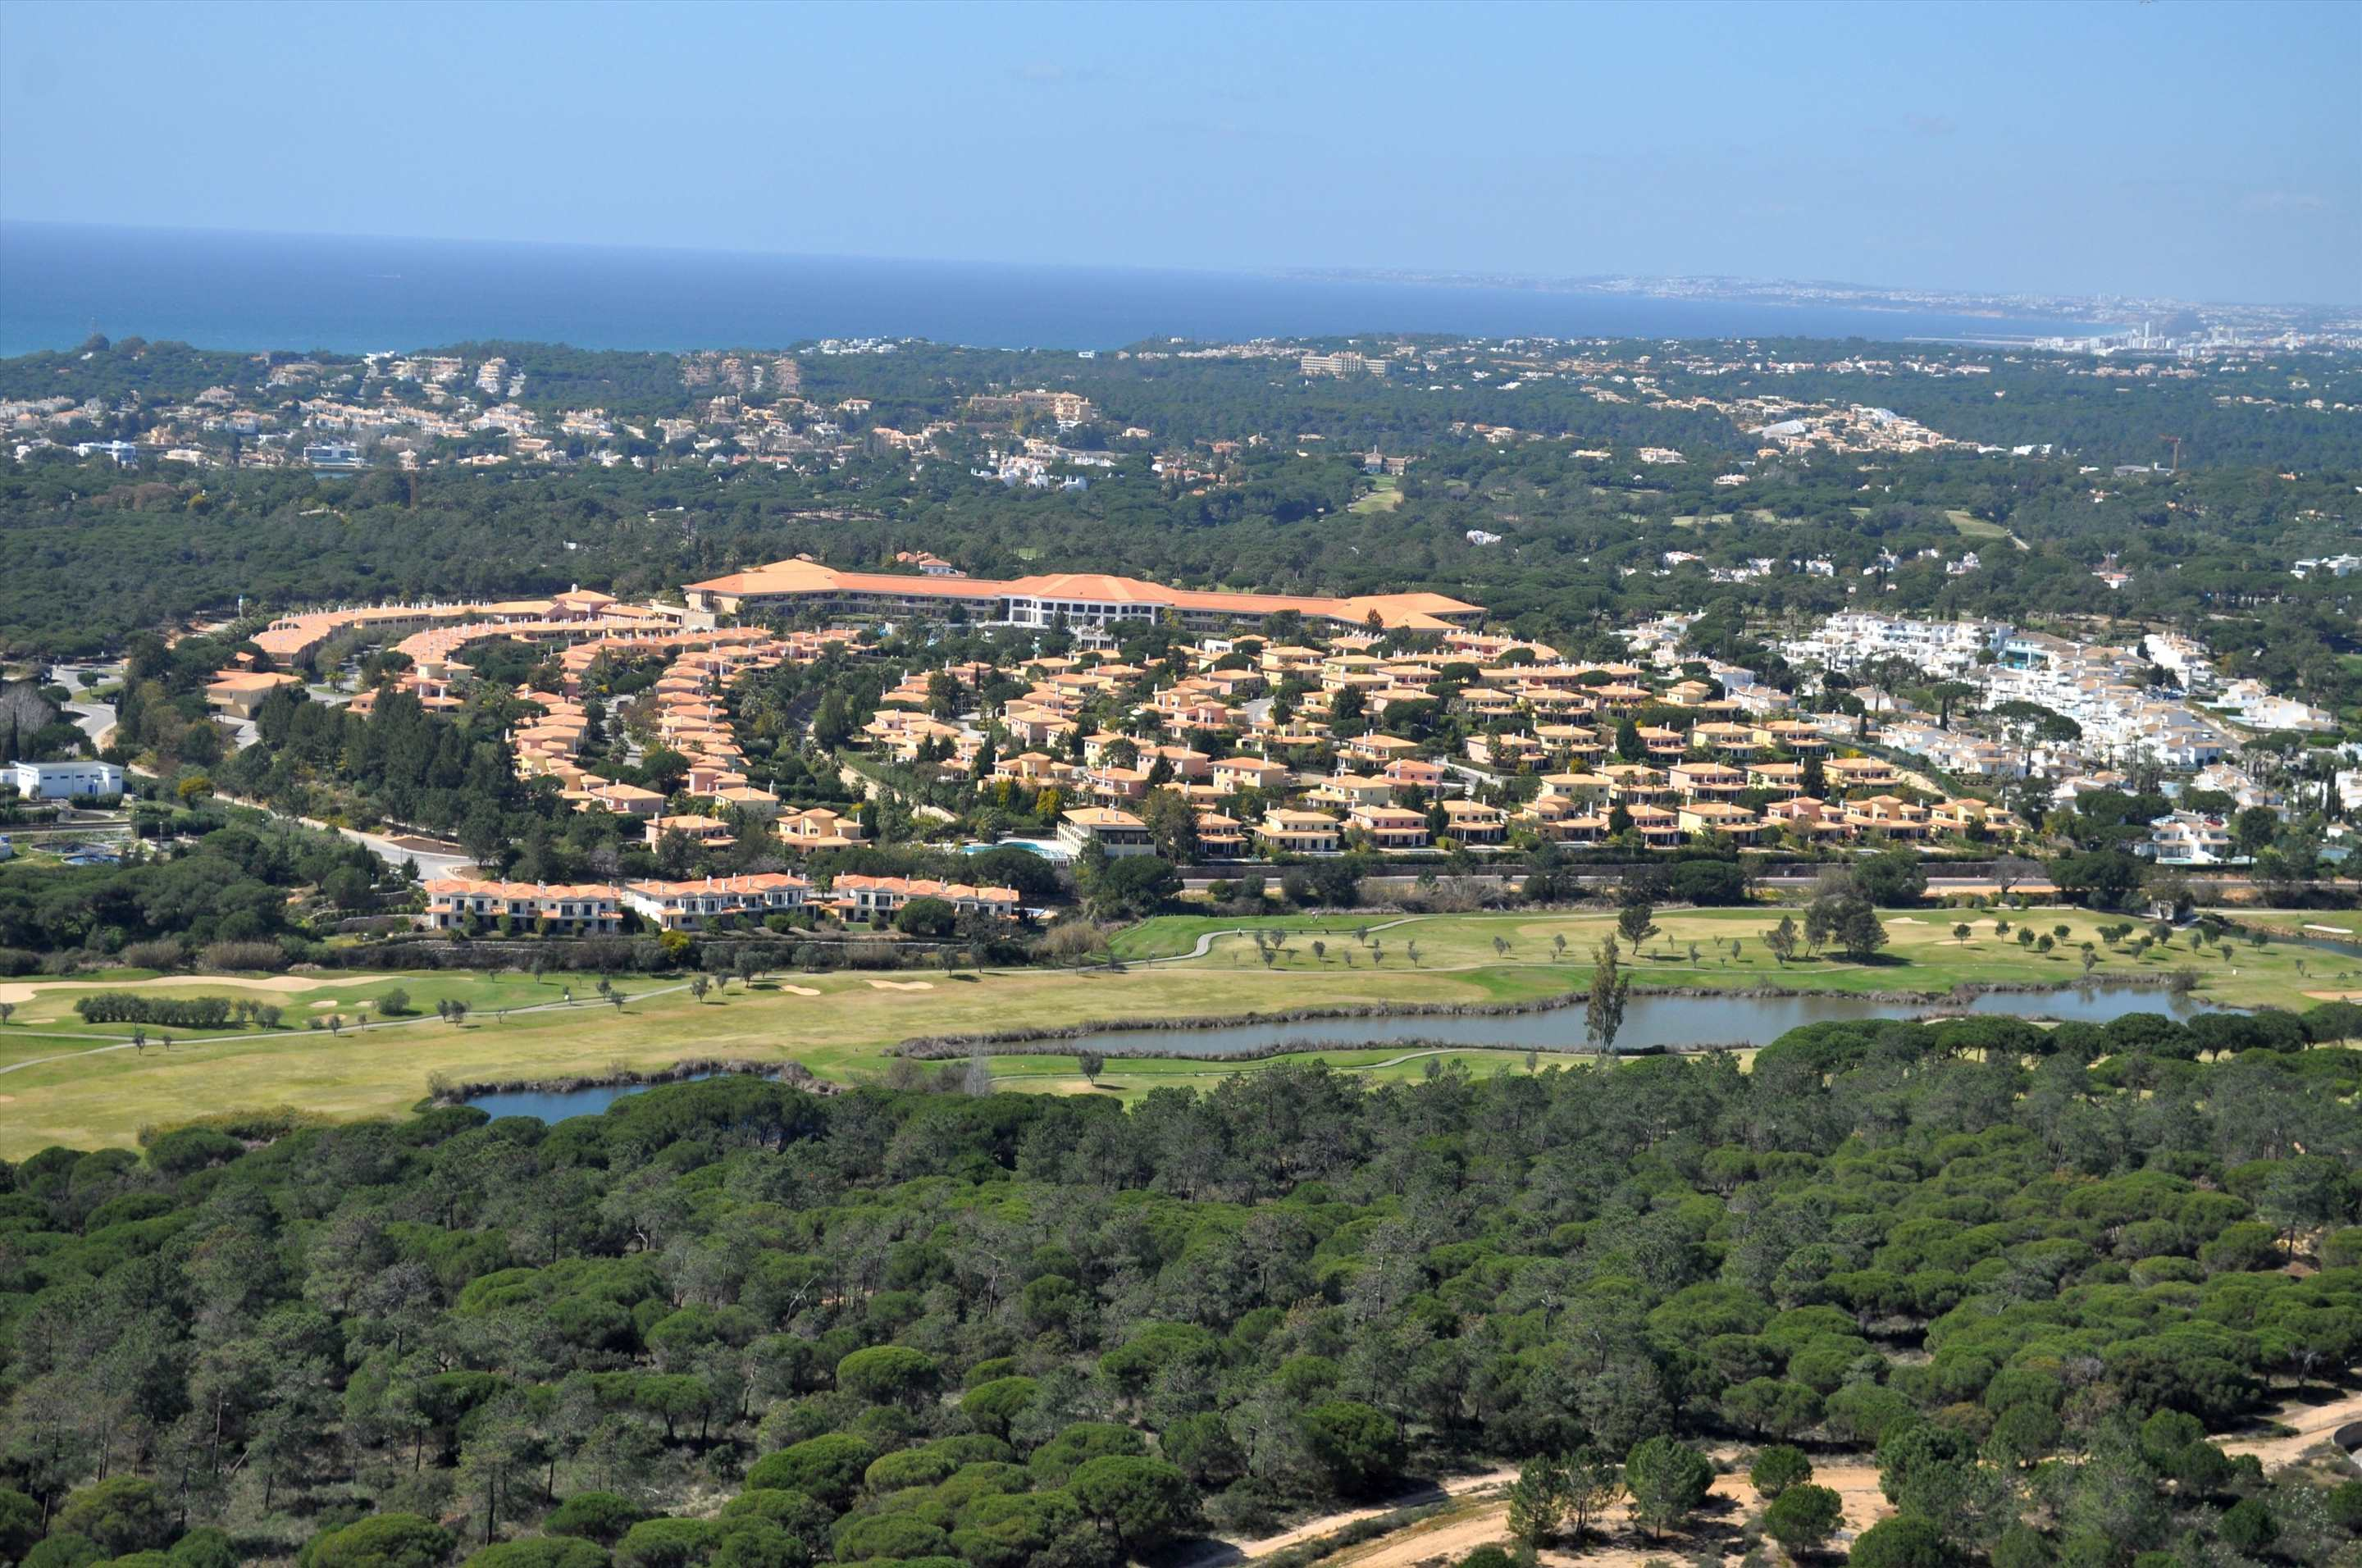 Martinhal Quinta Townhouse (3 Bedroom), 3 bedroom villa in Martinhal Quinta Resort, Algarve Photo #34